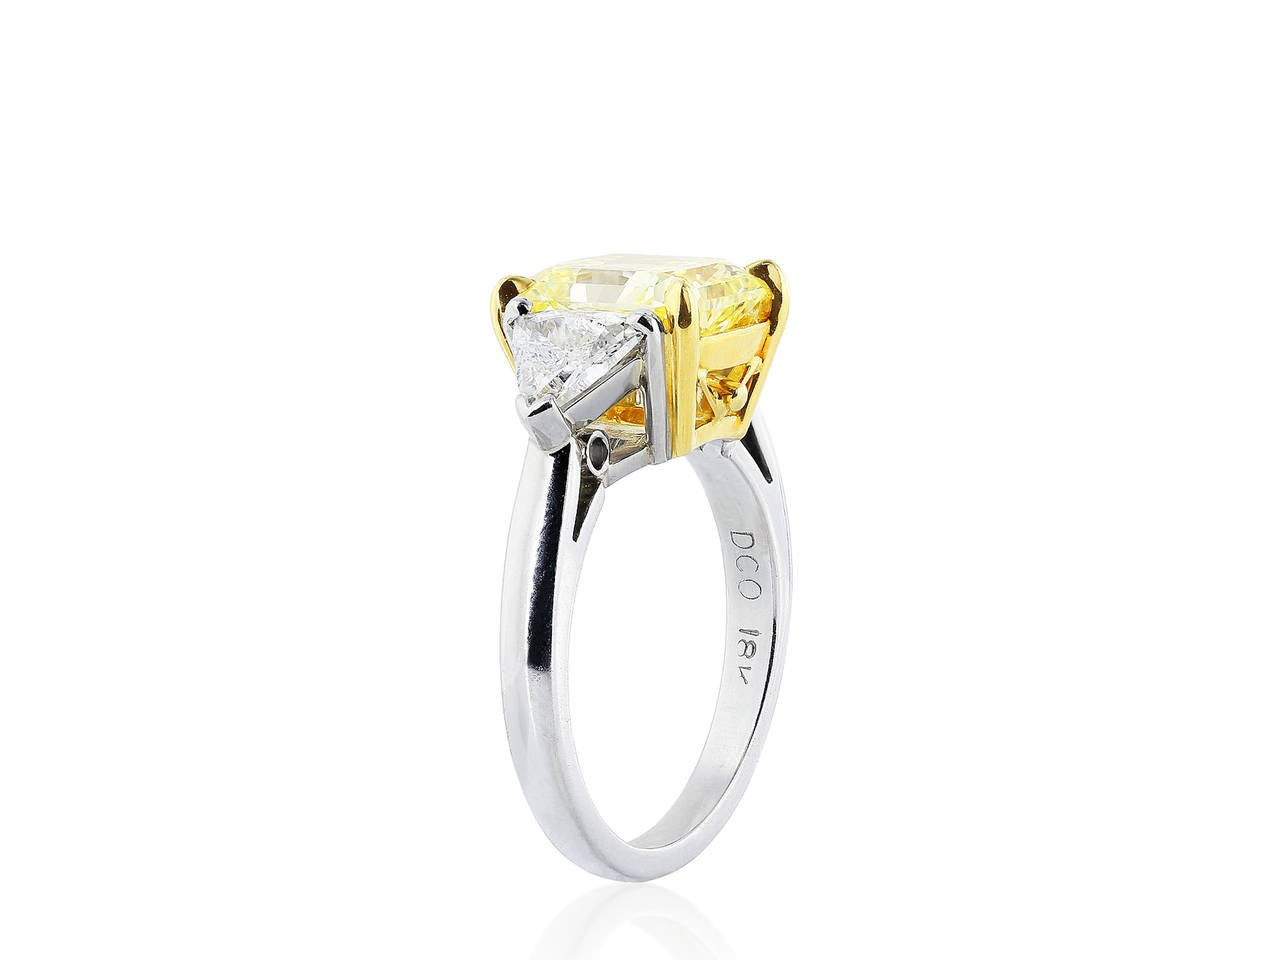 wid white collections m fit yellow soleste and in ring hei tiffany diamond fmt canary constrain ed id platinum